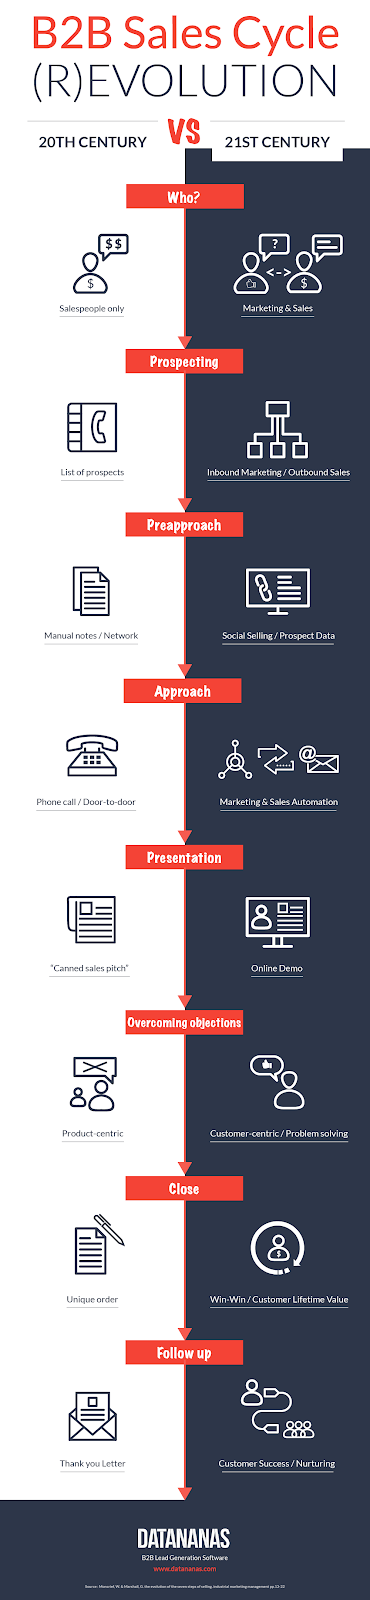 B2b sales cycle infographics: how b2b sales cycle changed since 20th century